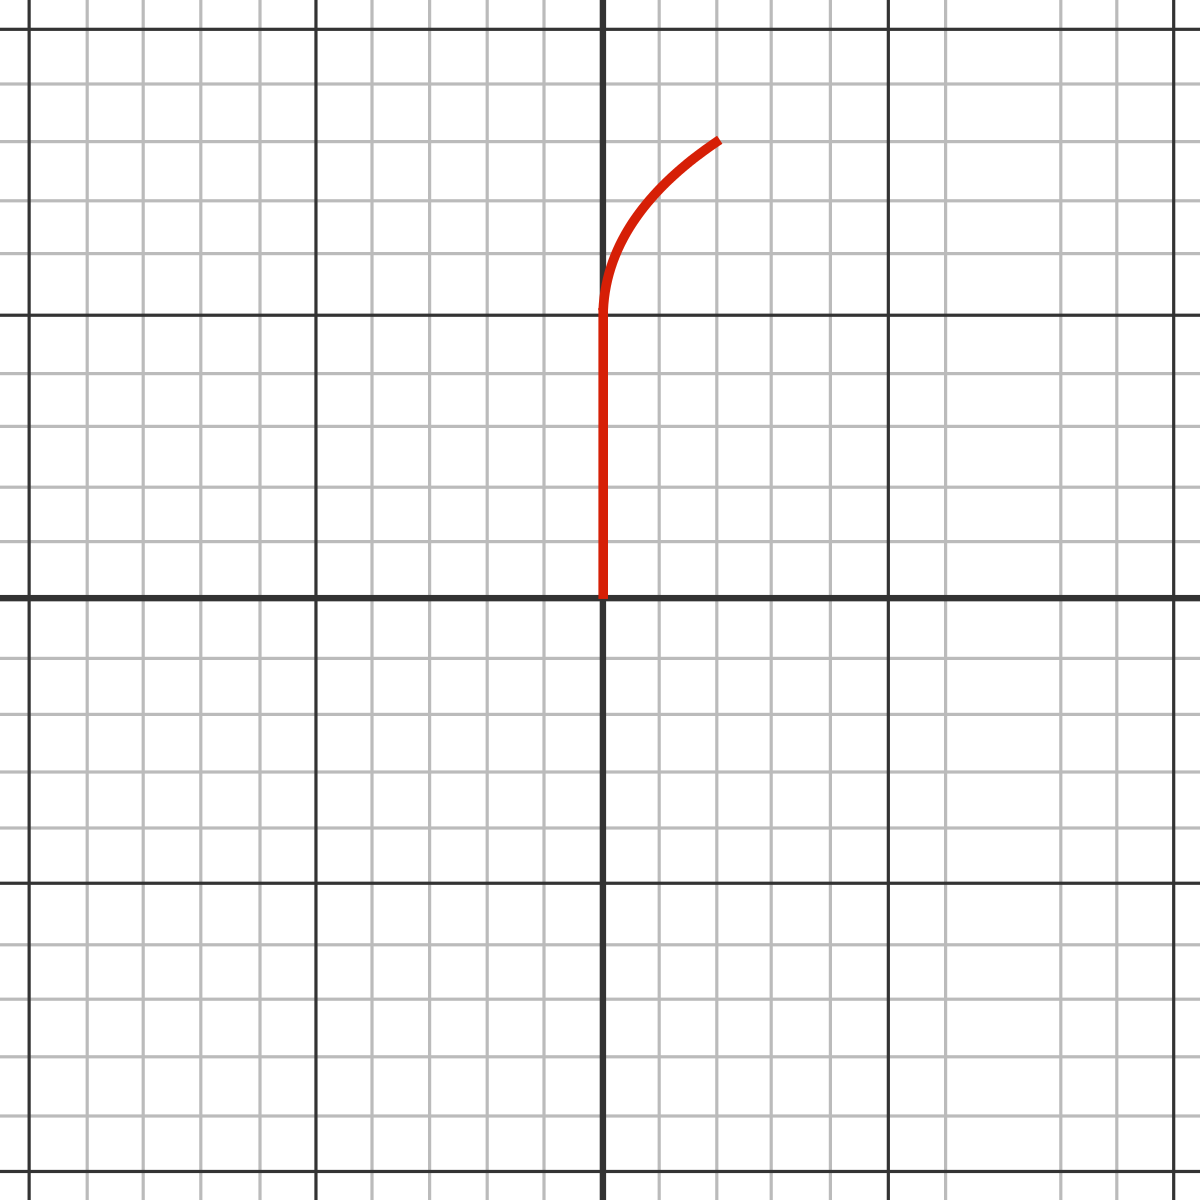 The above is one possible path (in red). The ant walks 5 meters north and then curves off towards the right.